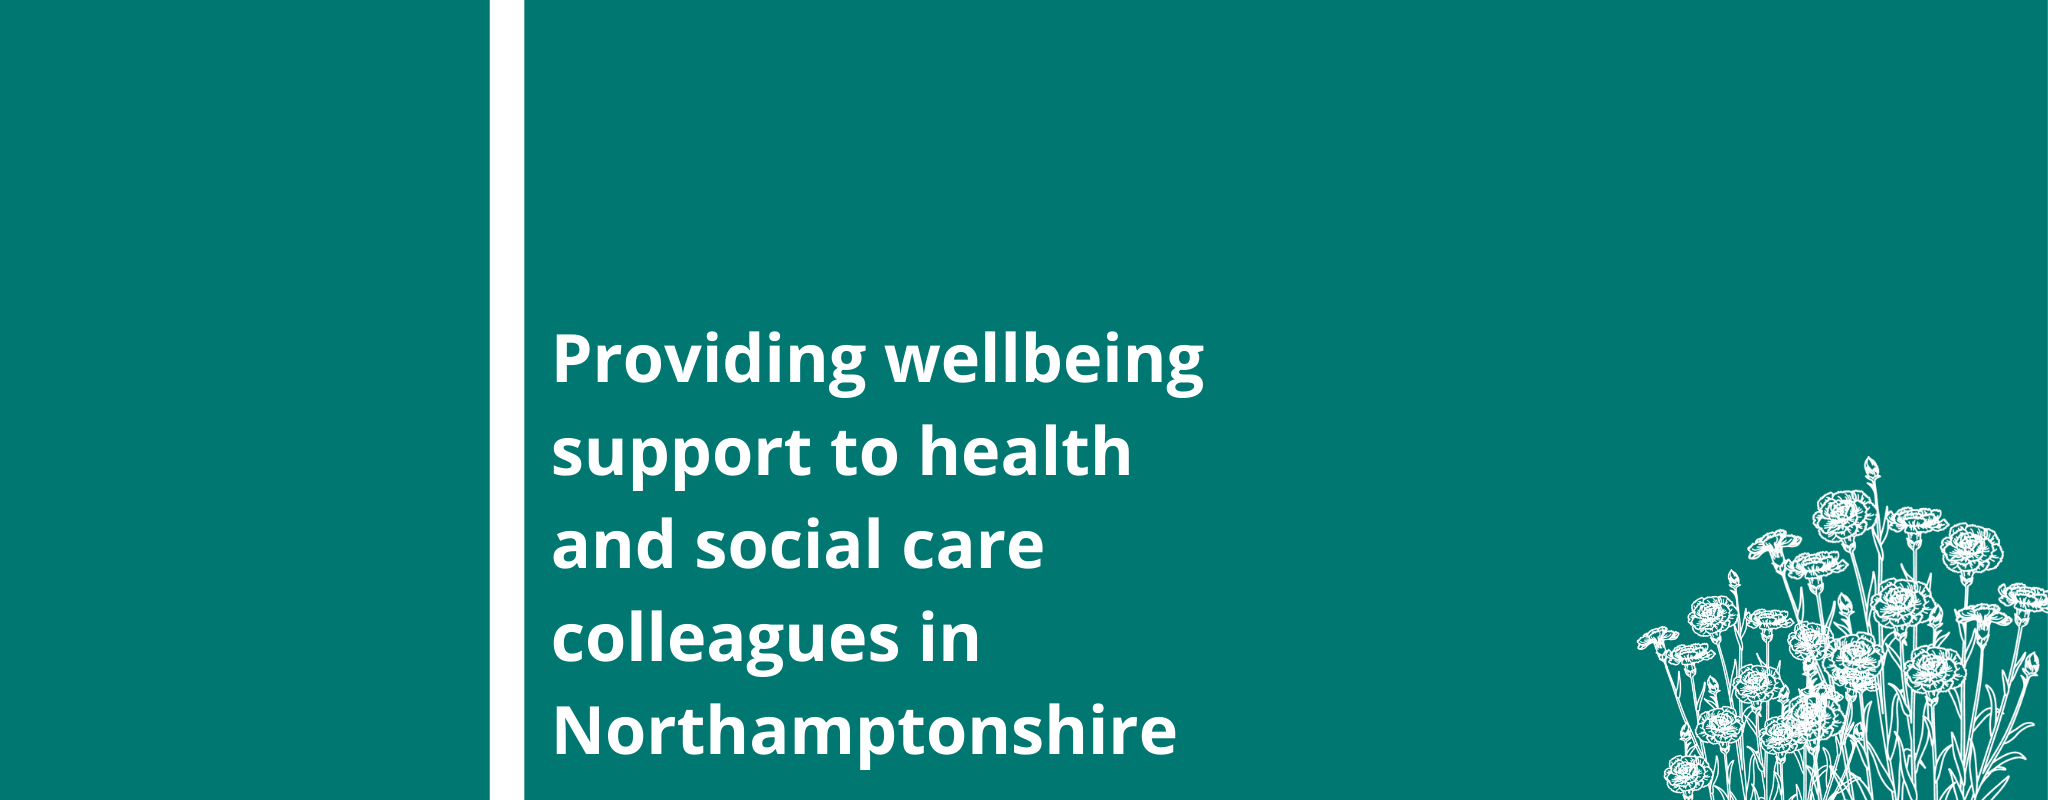 providing wellbeing support to health and social care colleagues in Northamptonshire